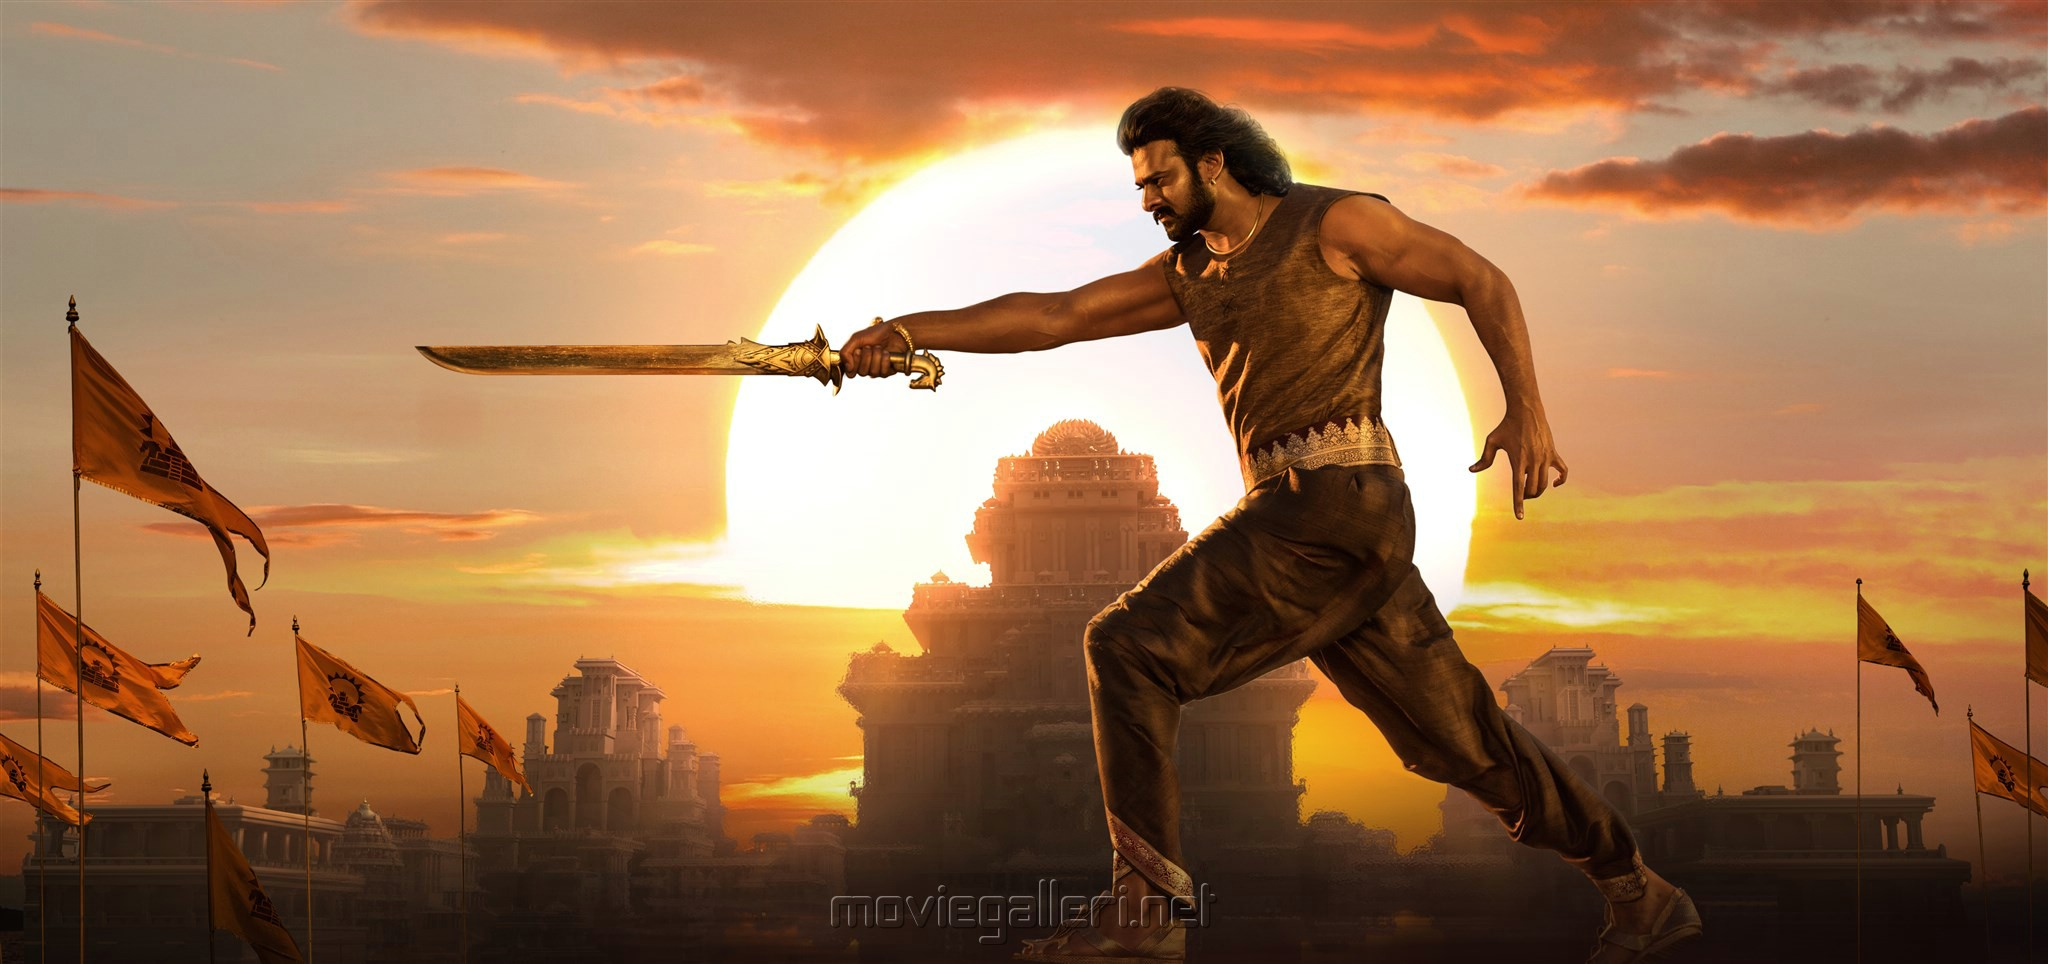 Hero Prabhas in Baahubali 2 Movie HD Images